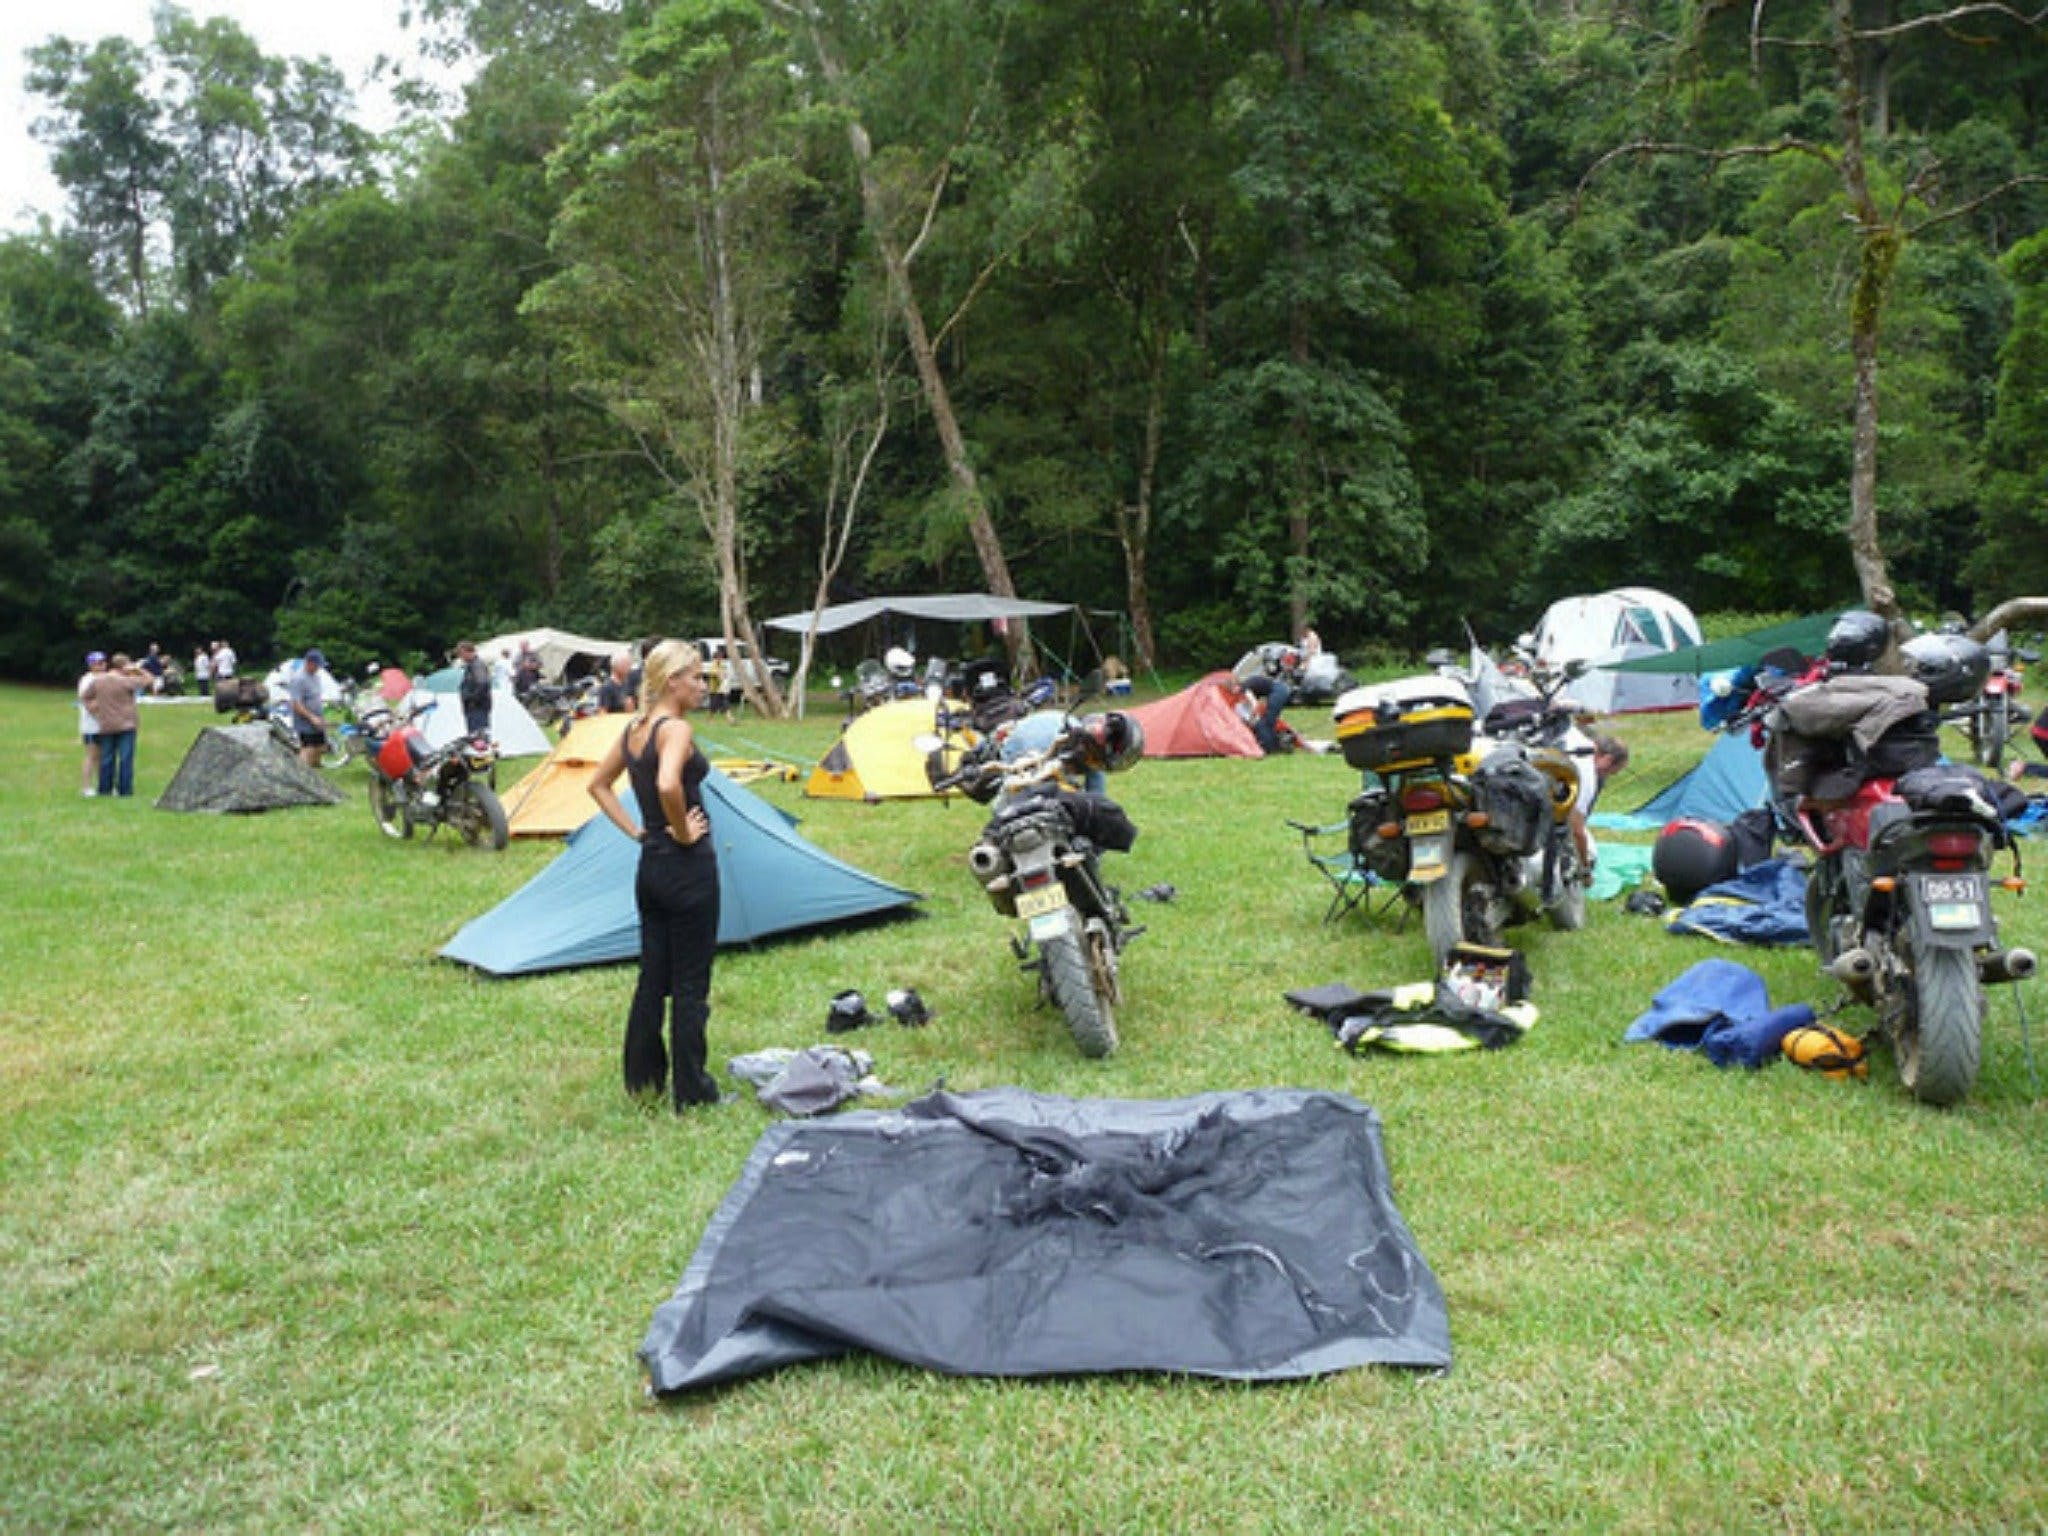 Karuah River Motorcycle Rally - Pubs and Clubs